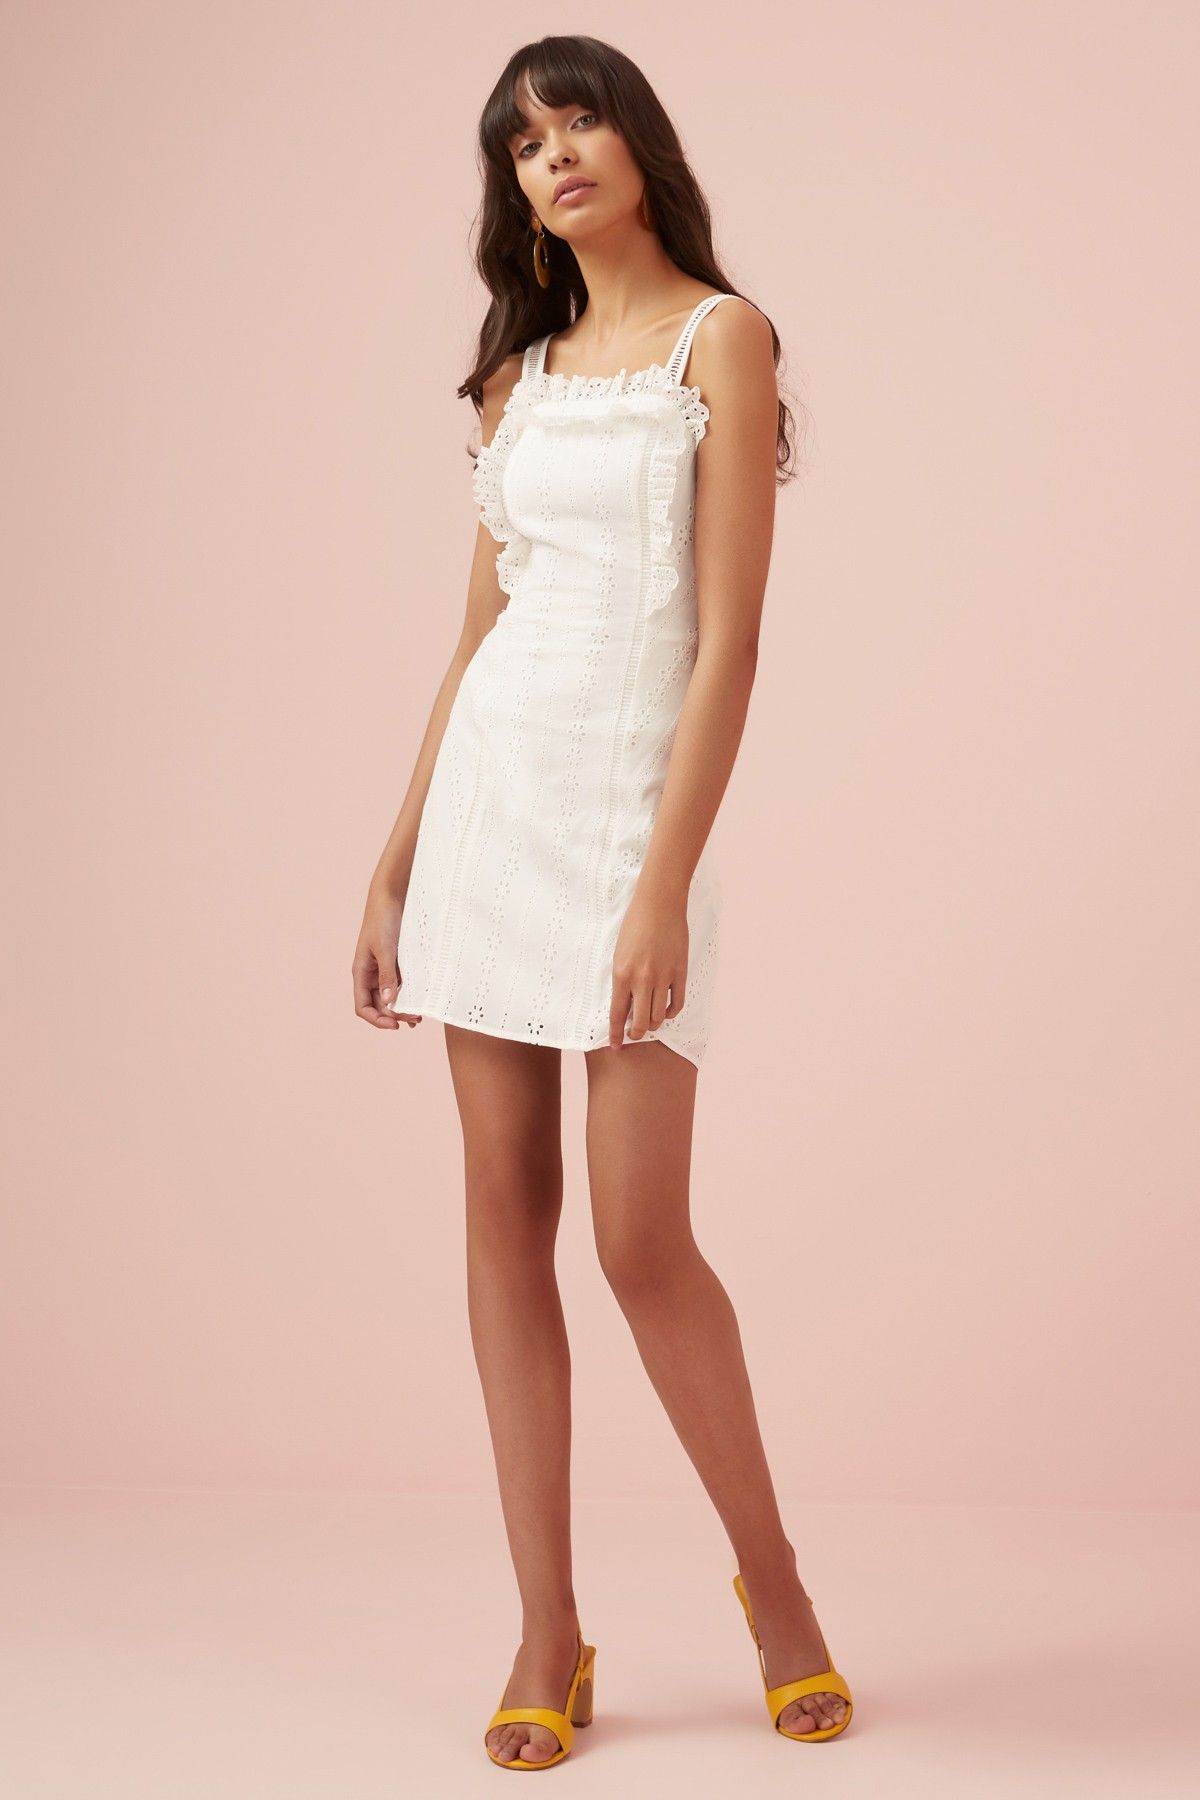 Sundays Mini Dress White Finders Keepers Bnkr White Mini Dress Mini Dress White Dress